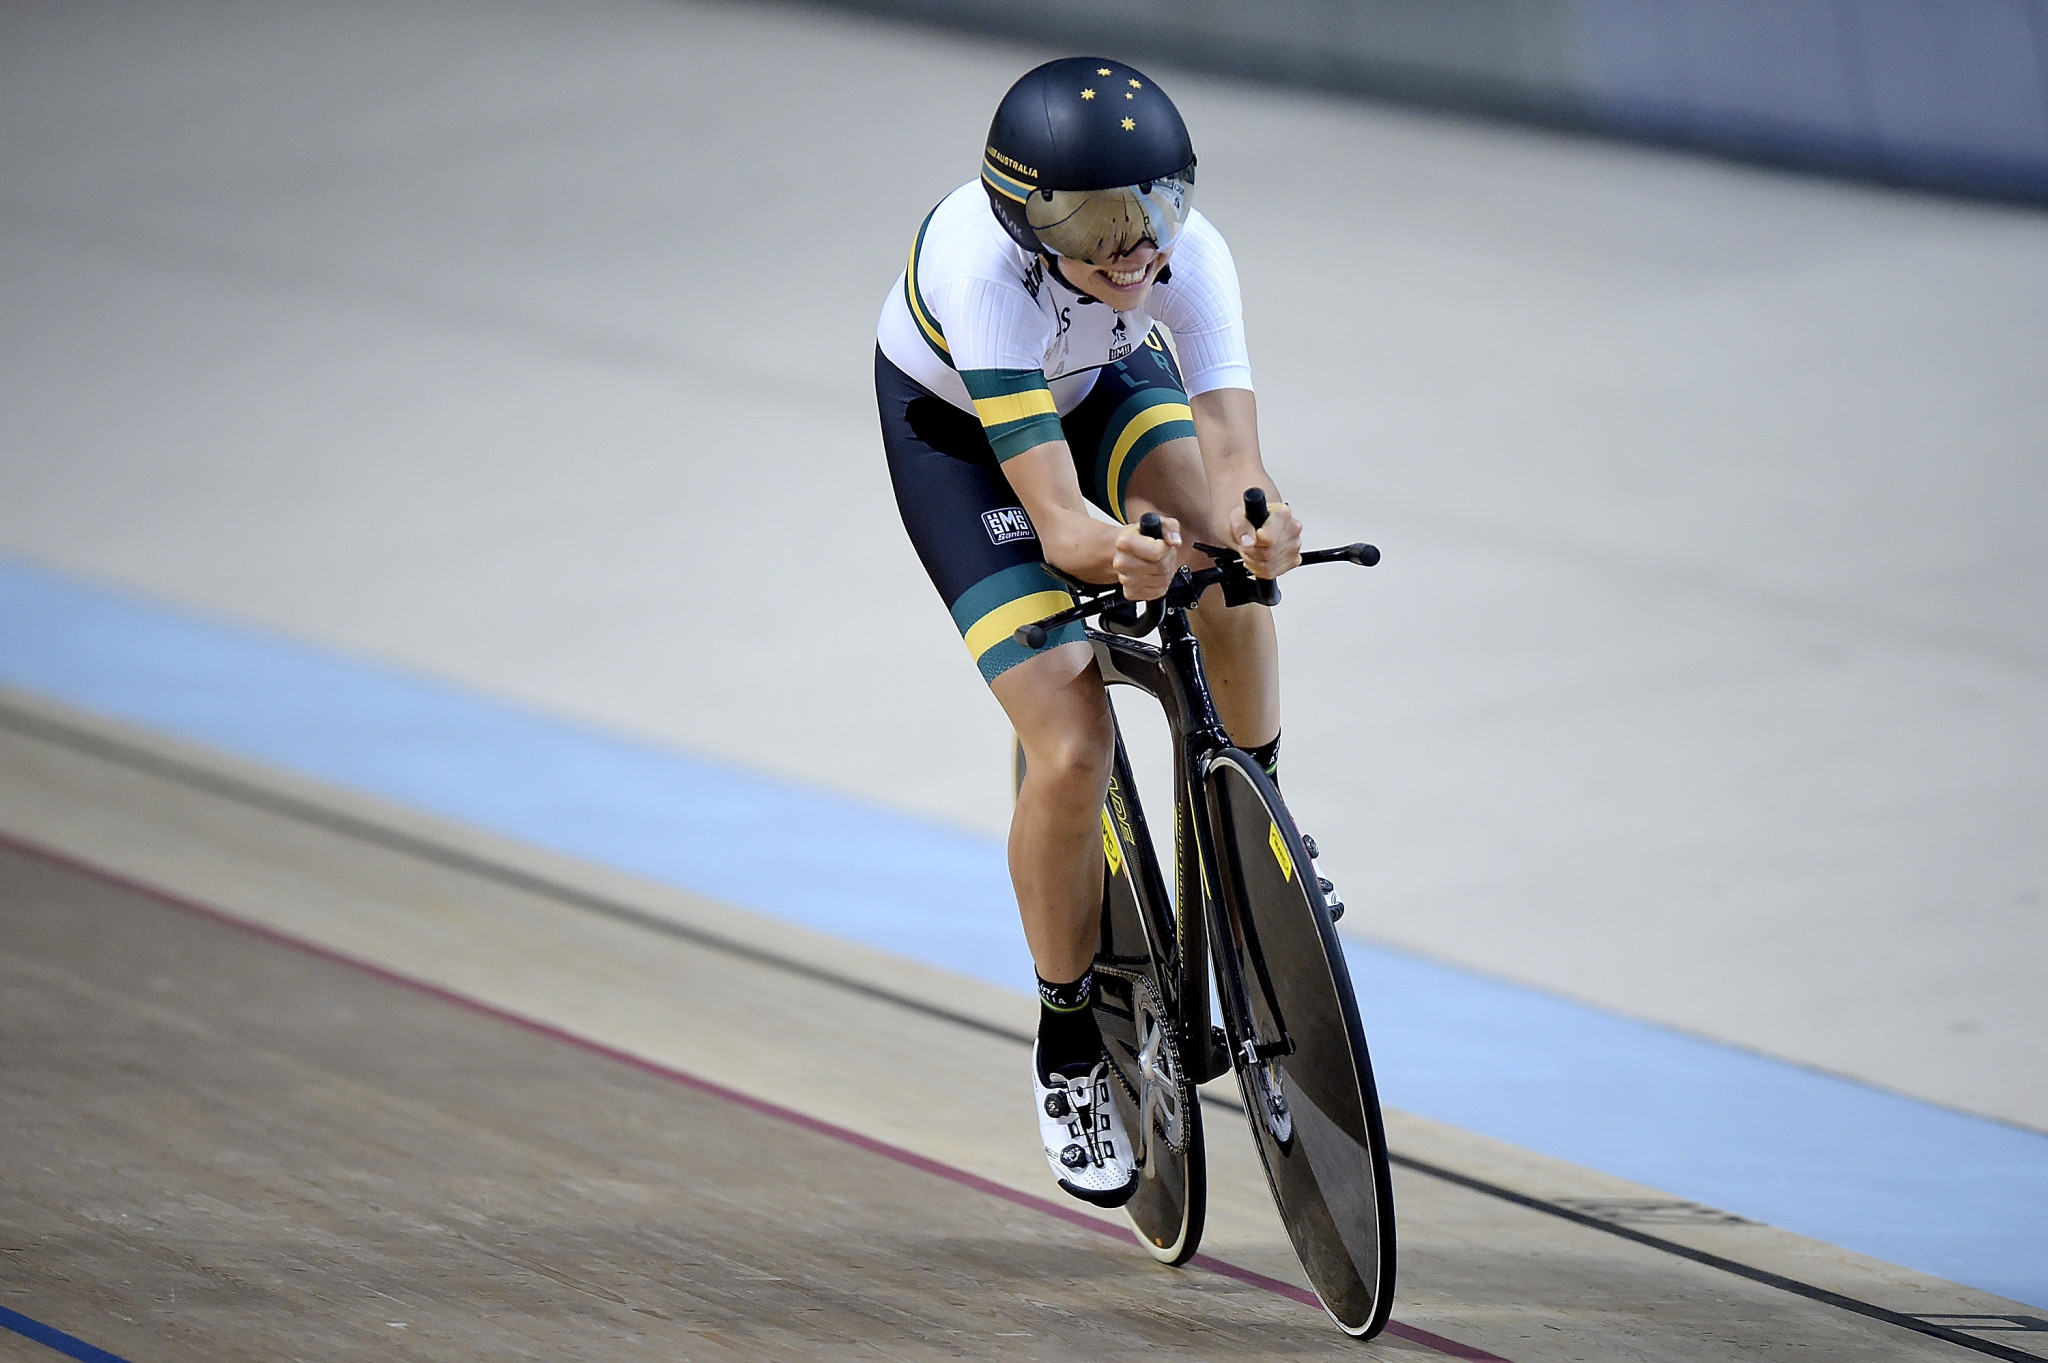 Emily Petricola claimed a gold and bronze medal at this year's World Championships in  Apeldoorn ©Getty Images